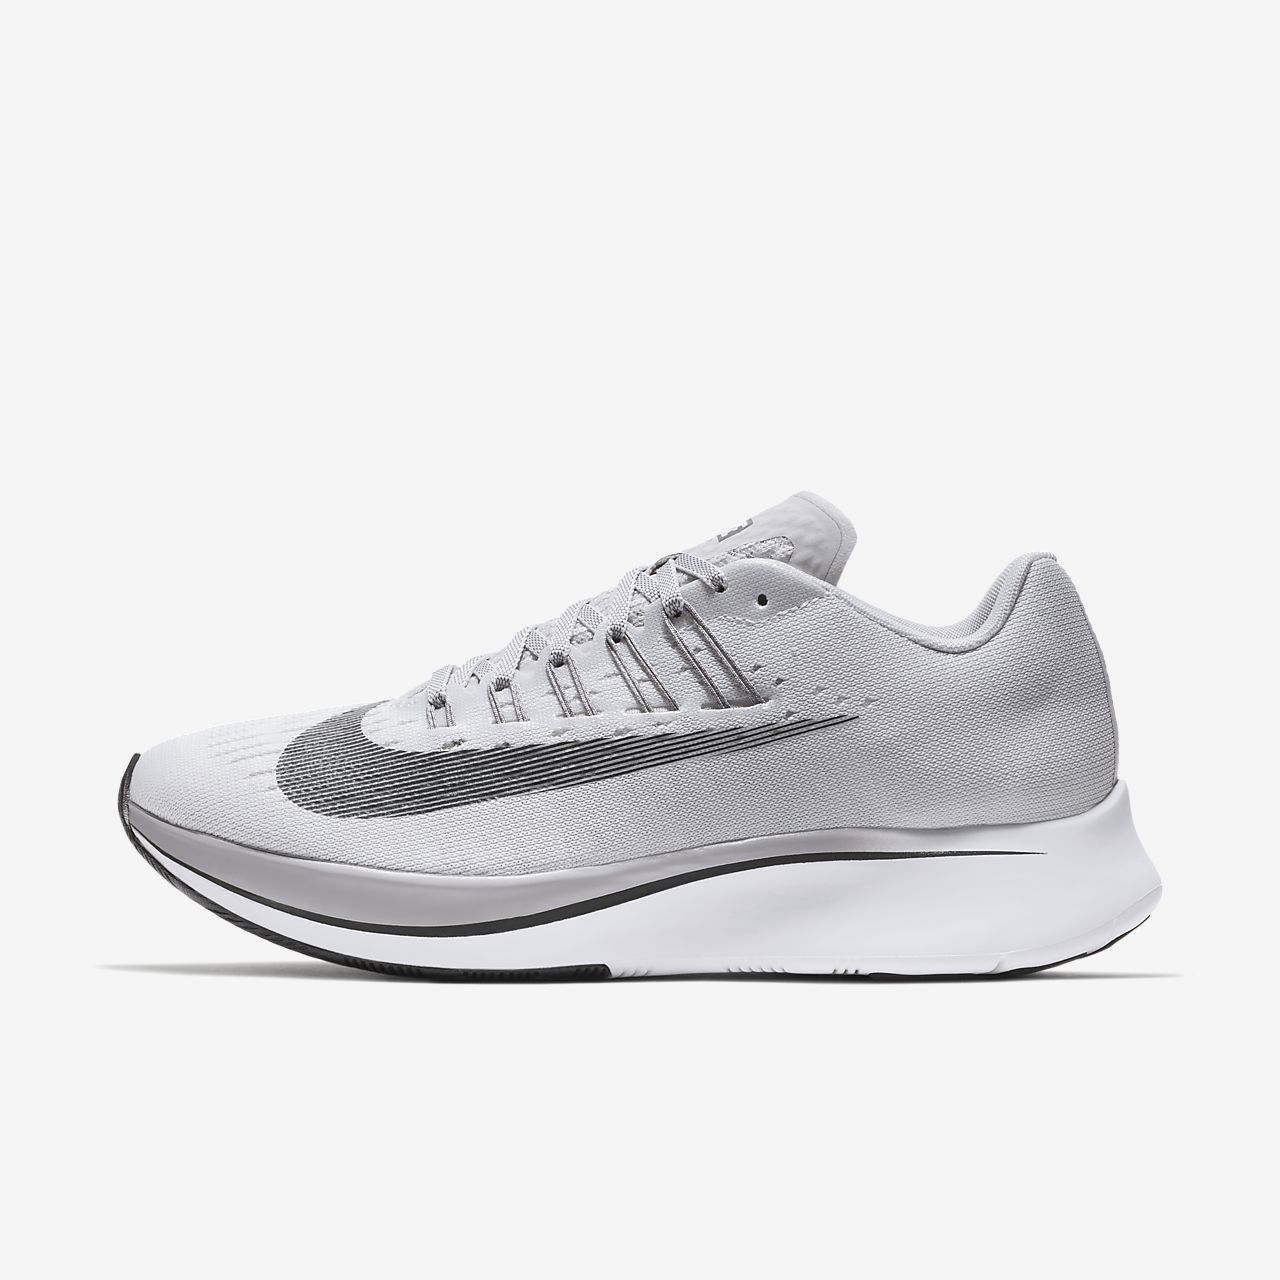 Nike Zoom Fly Women's Shoes NEW! Sz 10.5